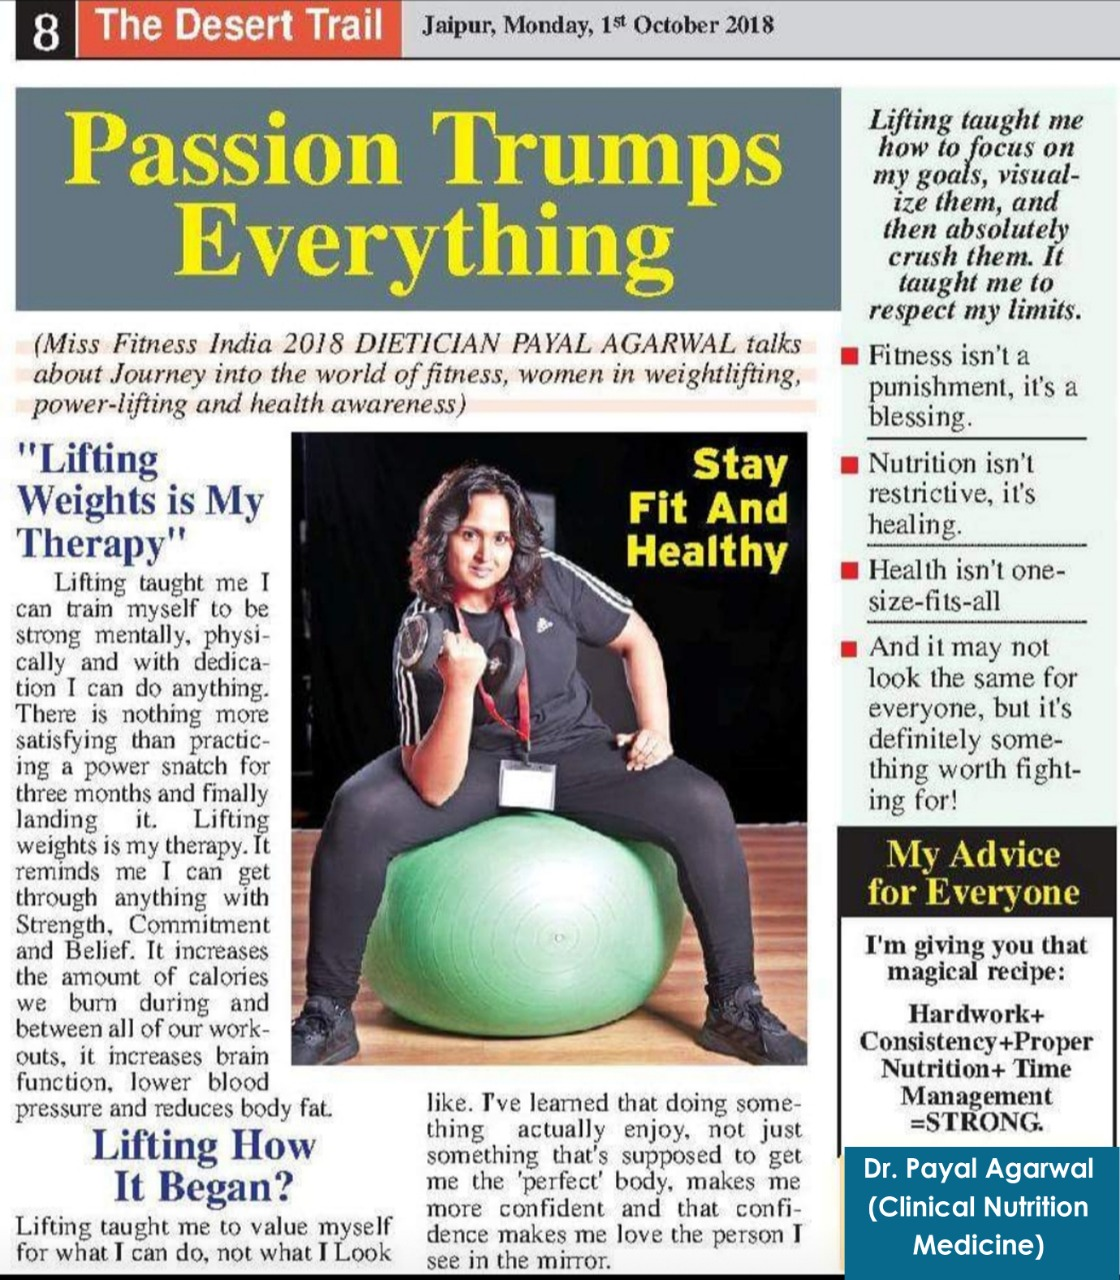 Passion trumps everything